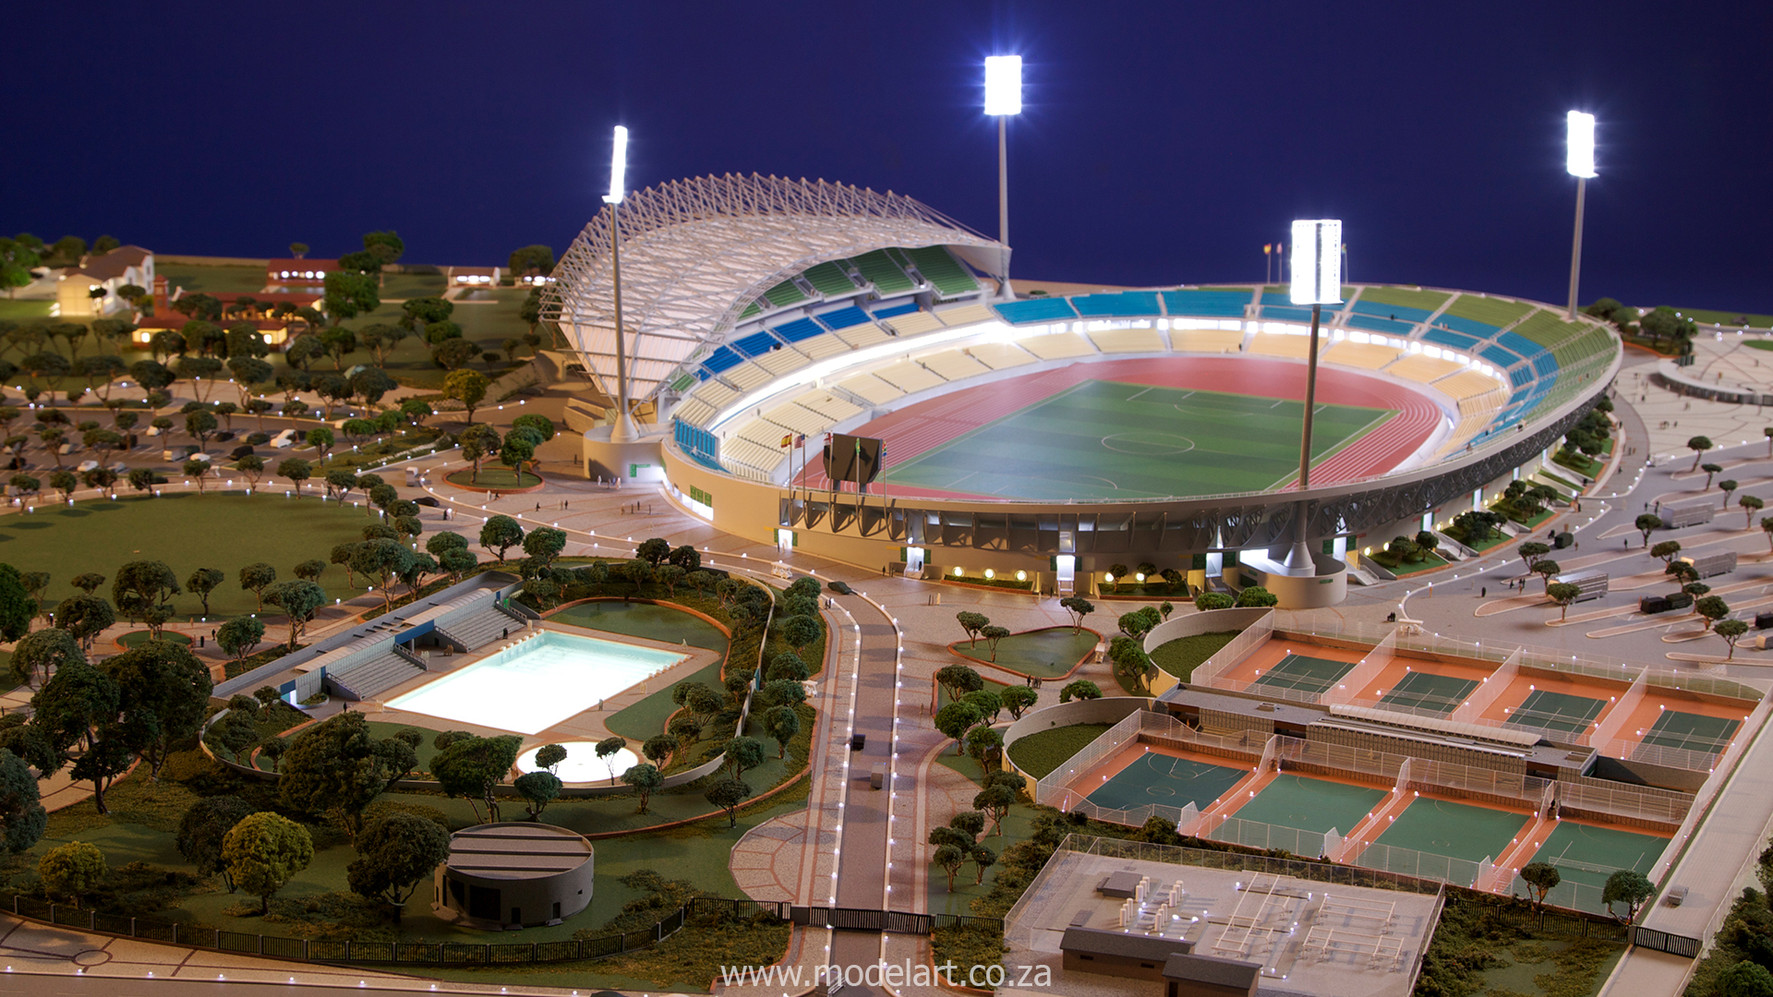 Architectural-Scale-Model-Sports Facilities-Royal Bafokeng Stadium-1